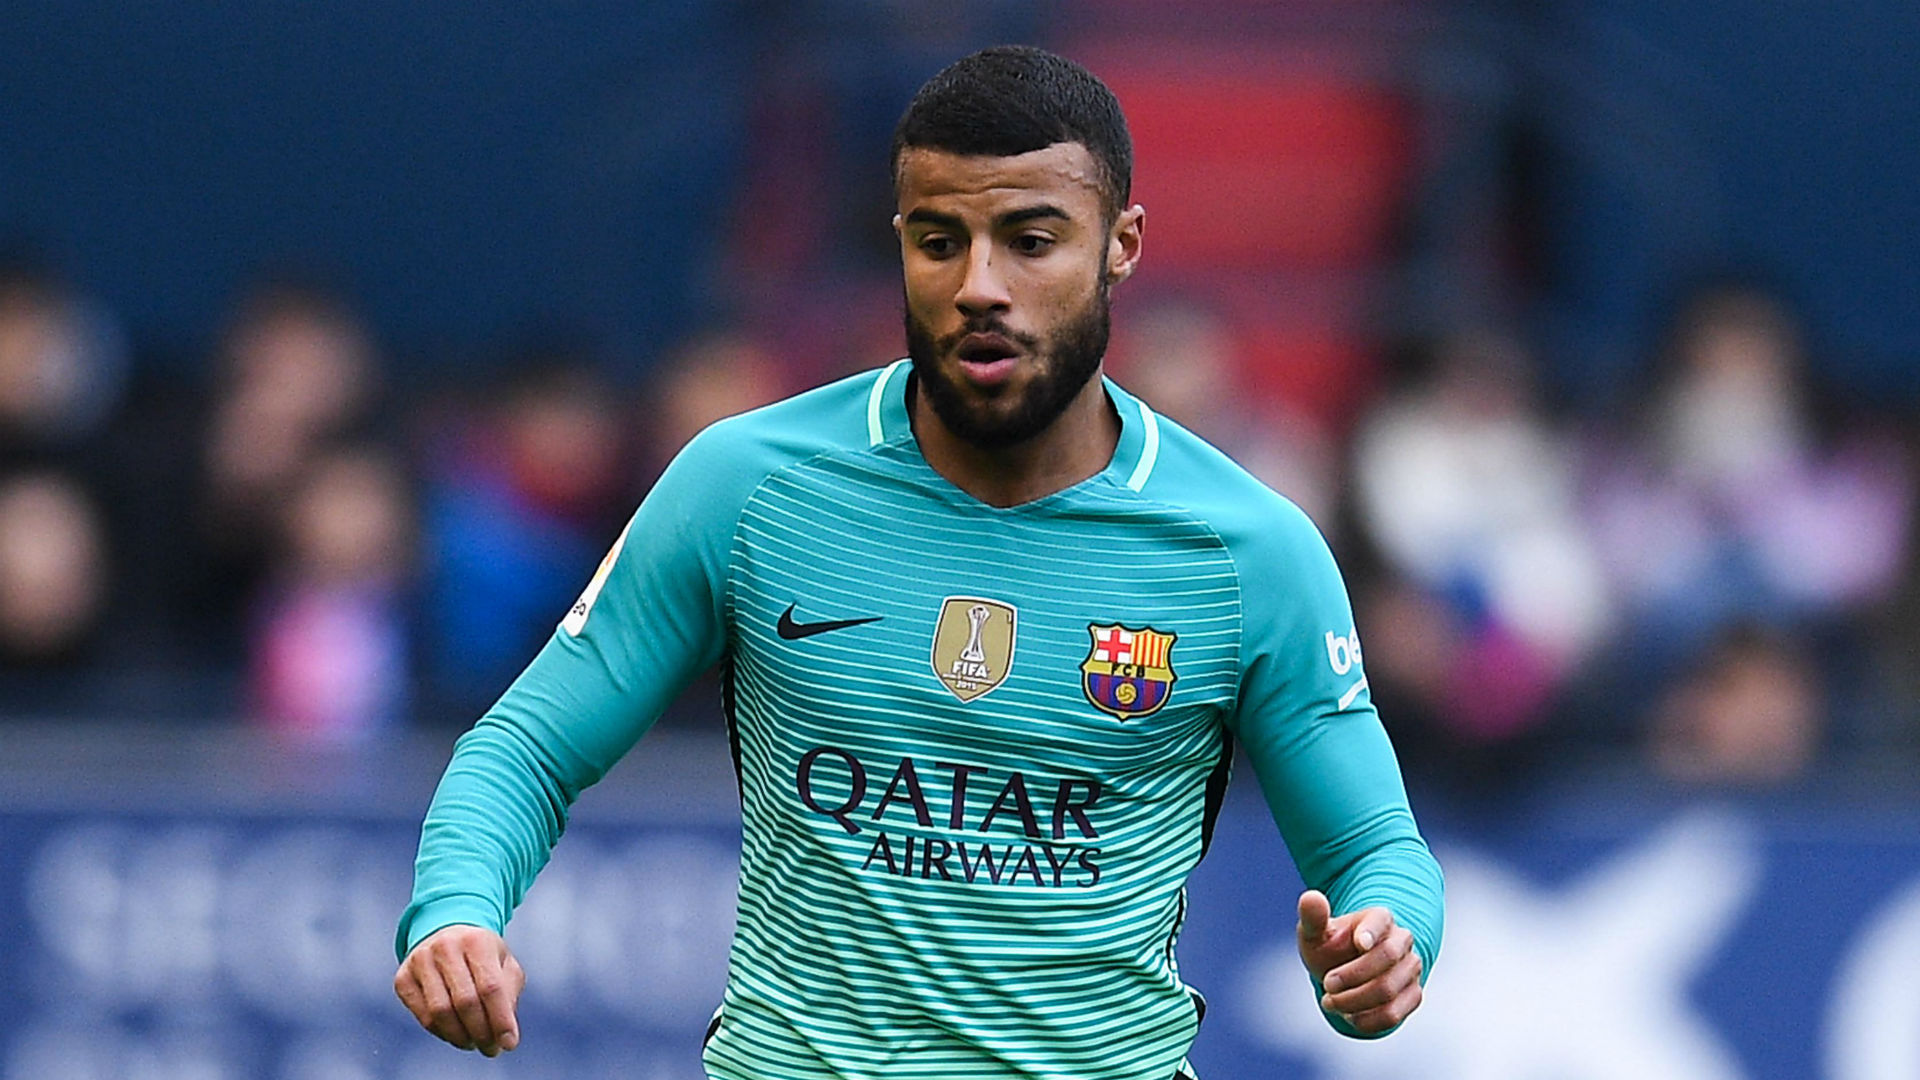 Barcelona accept €35m offer for transfer of Rafinha to Inter Milan